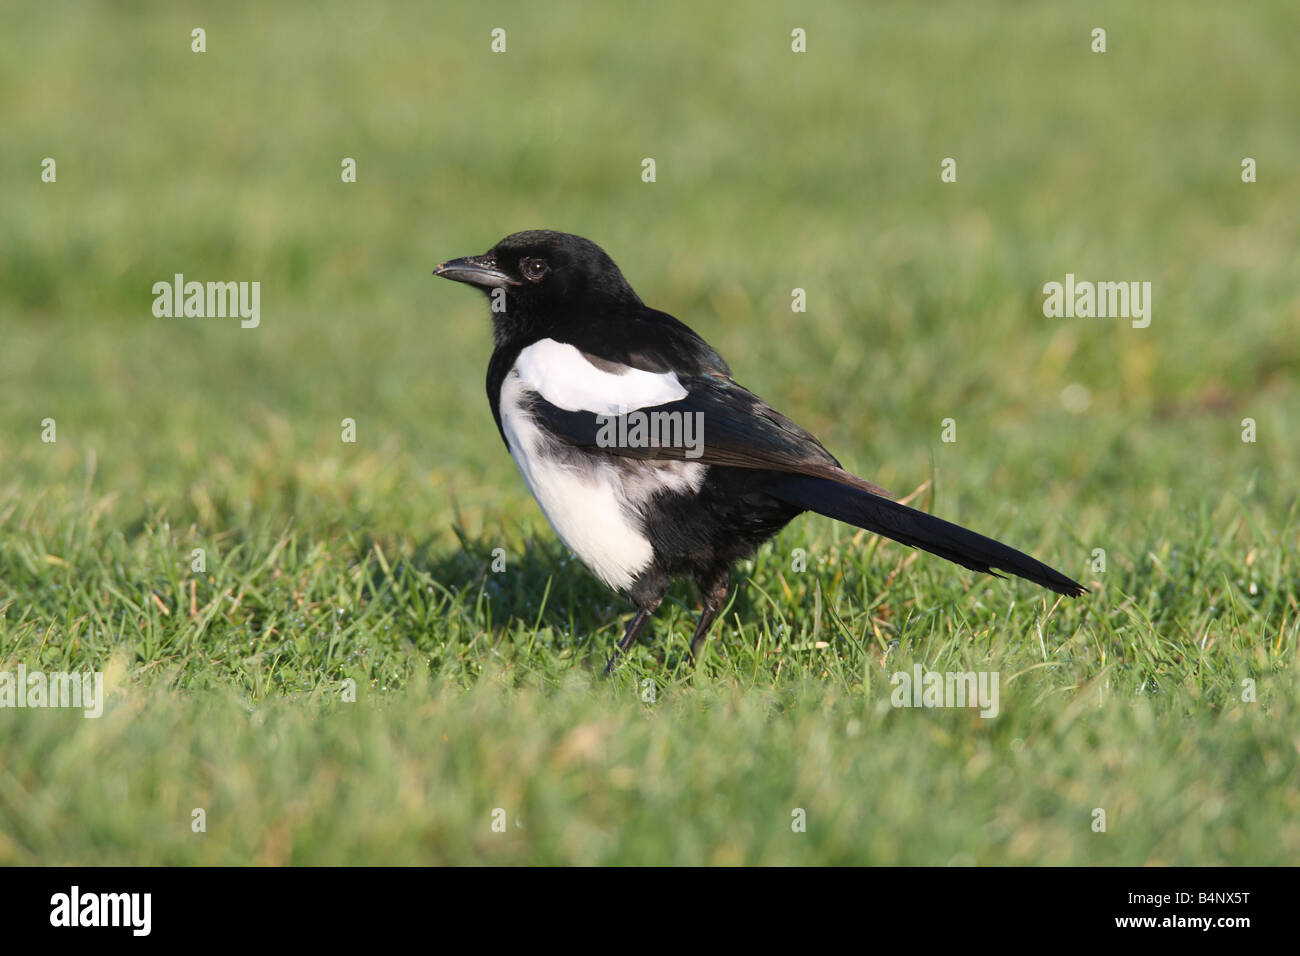 MAGPIE Pica pica STANDING ON LAWN SIDE VIEW - Stock Image